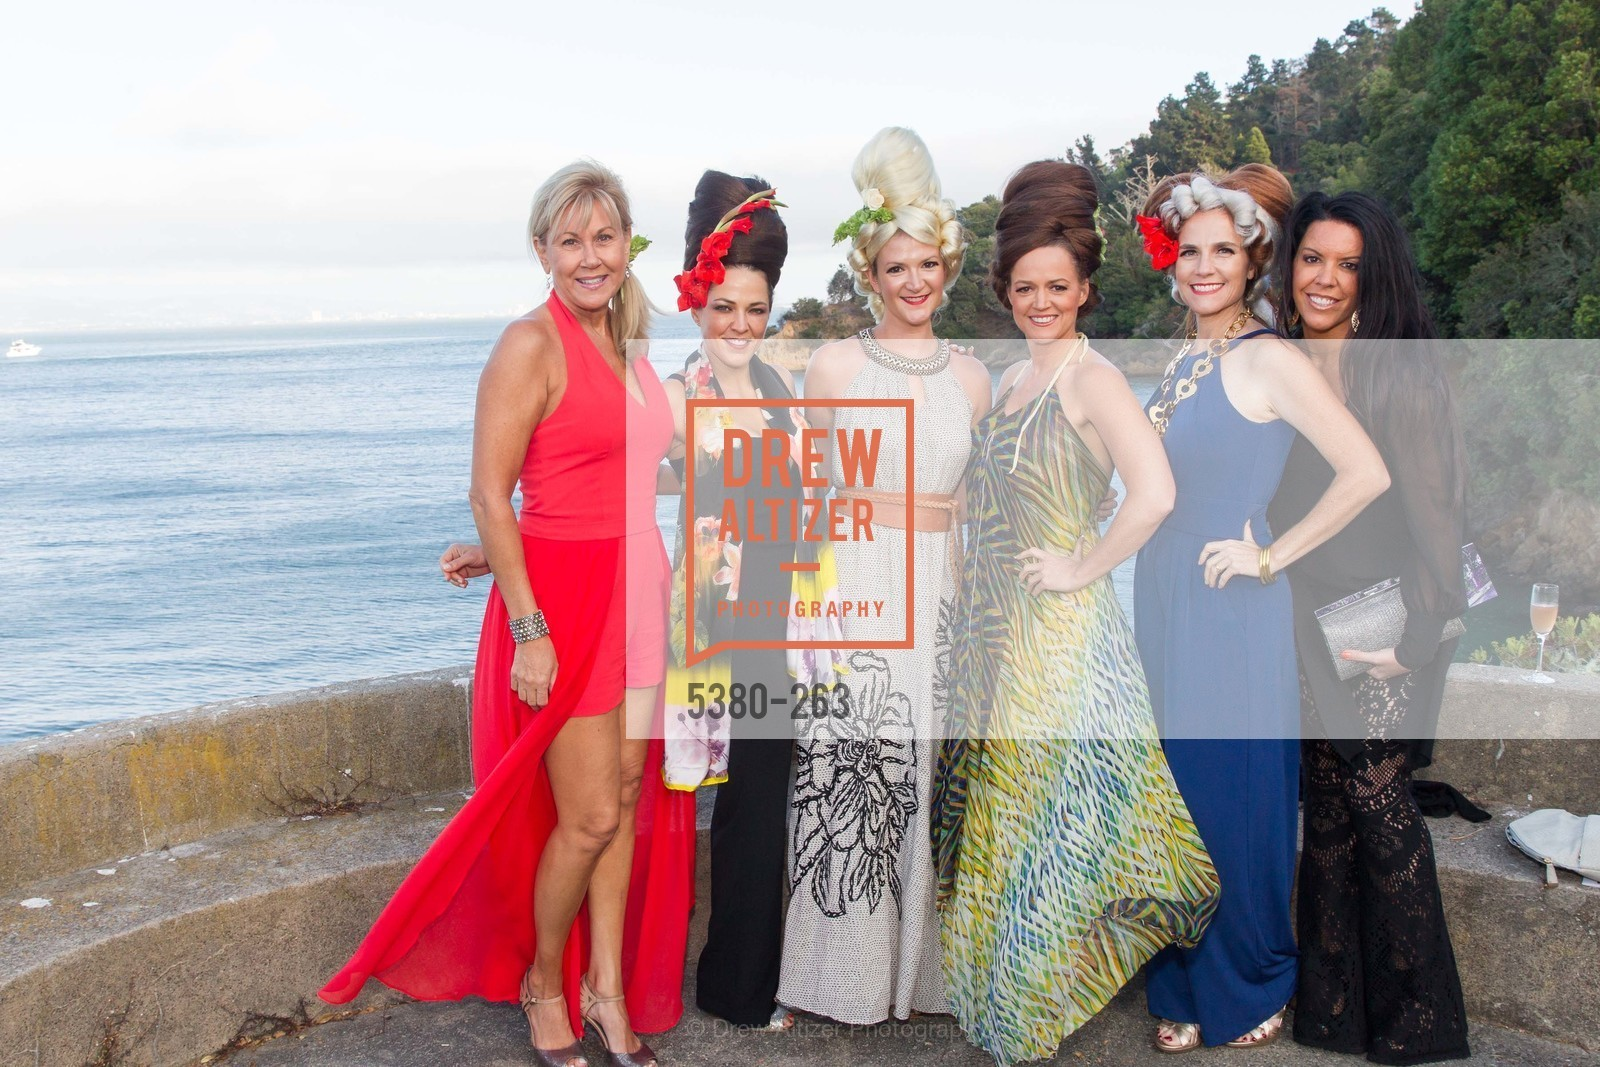 Denise Kelley, Suzanne Murtha, Mckenzie Strauss, Jamie Fawn-Meade, Kelly Lipscomb, Jennifer Donnelly, Drever Family Foundation Presents The 2015 Hotbed Benefit, Private, August 22nd, 2015,Drew Altizer, Drew Altizer Photography, full-service agency, private events, San Francisco photographer, photographer california